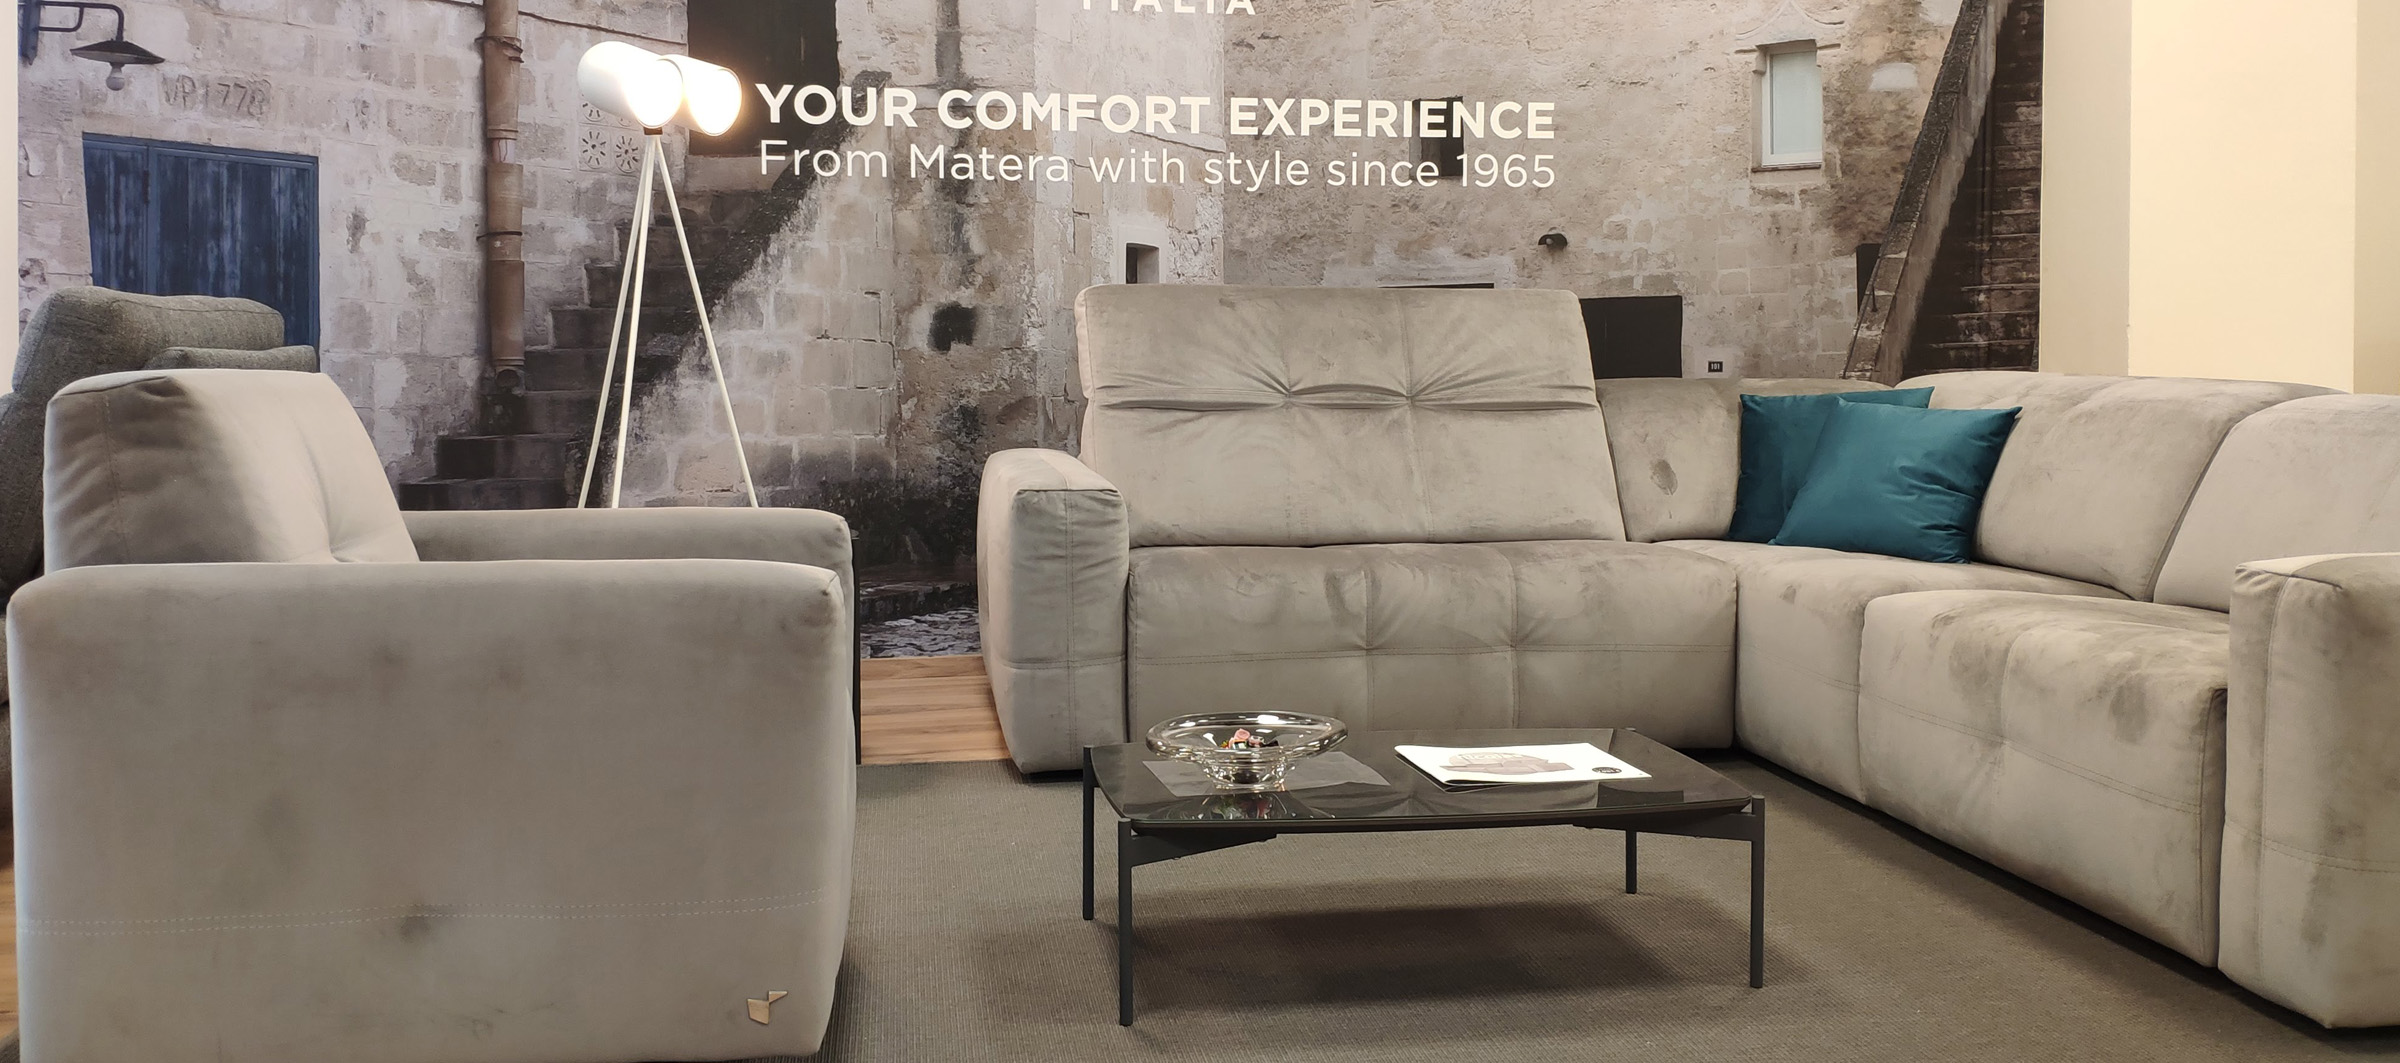 your comfort experience